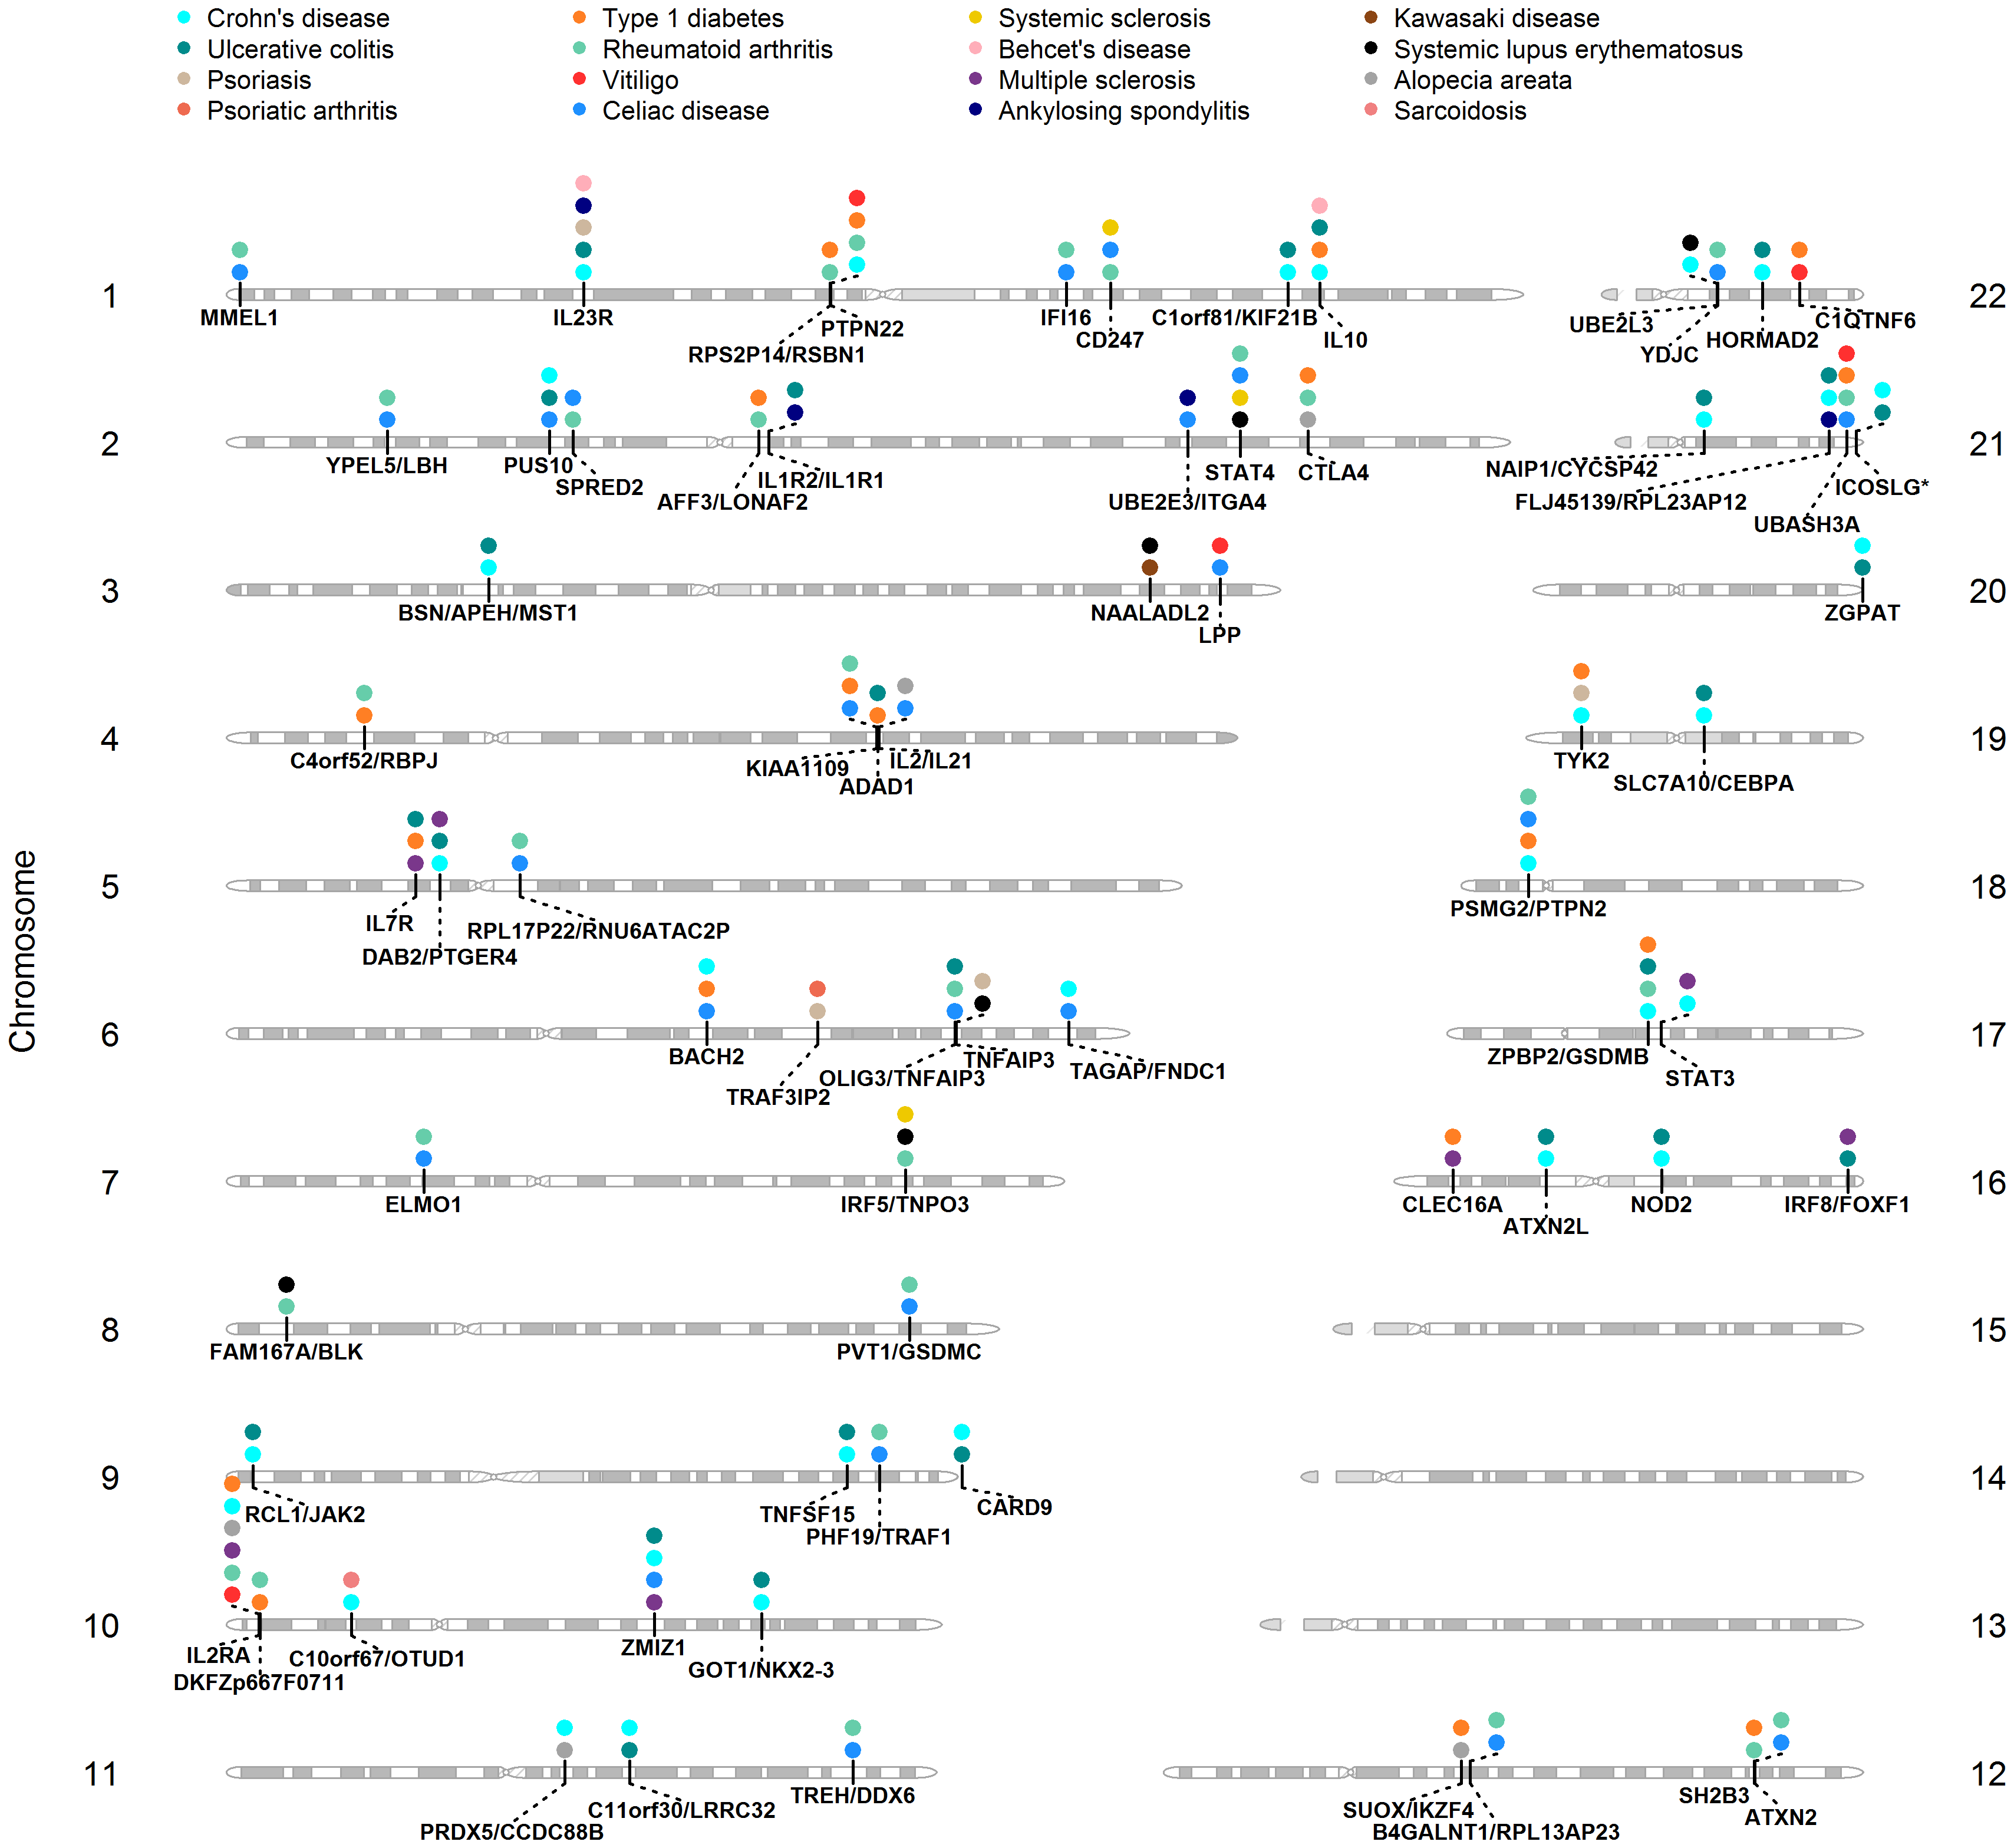 Shared <i>loci</i> between GWAS of ADs.